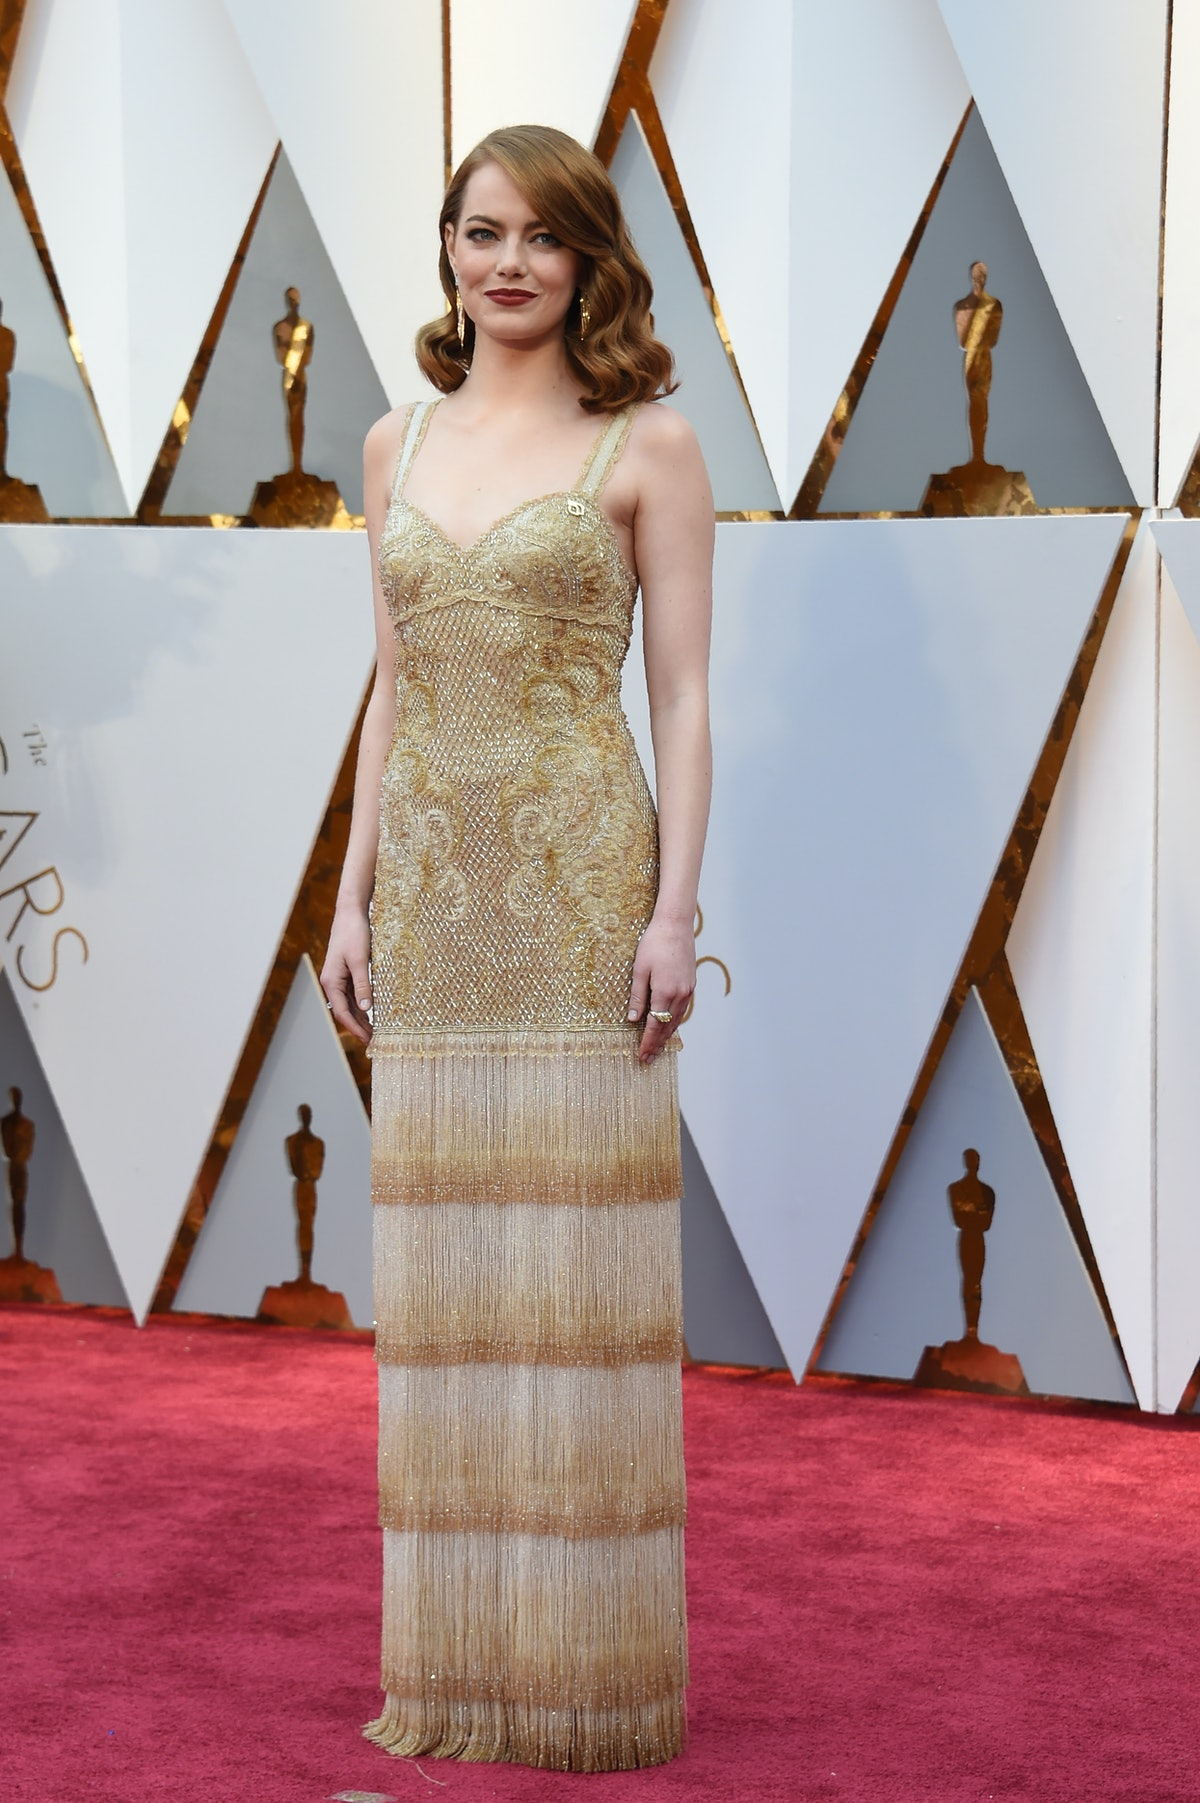 Stone wearing gold Givenchy Haute Couture gown